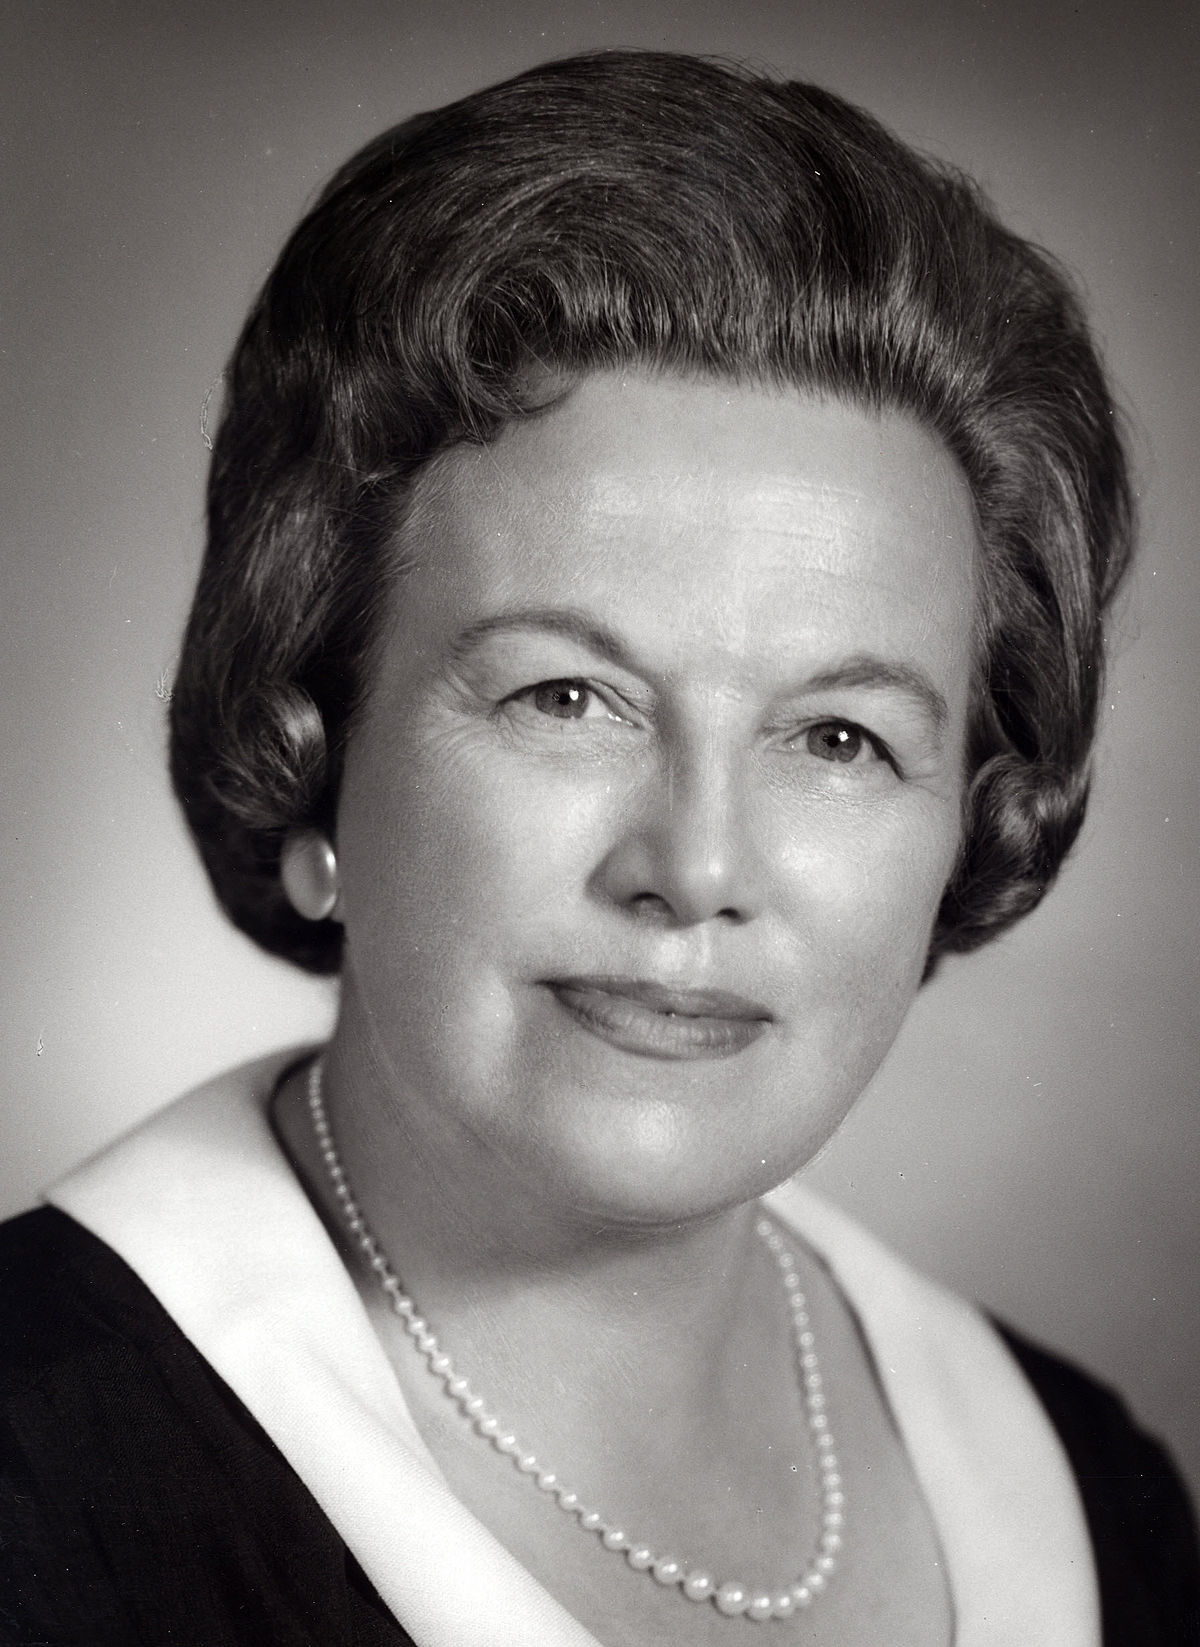 catherine dean may